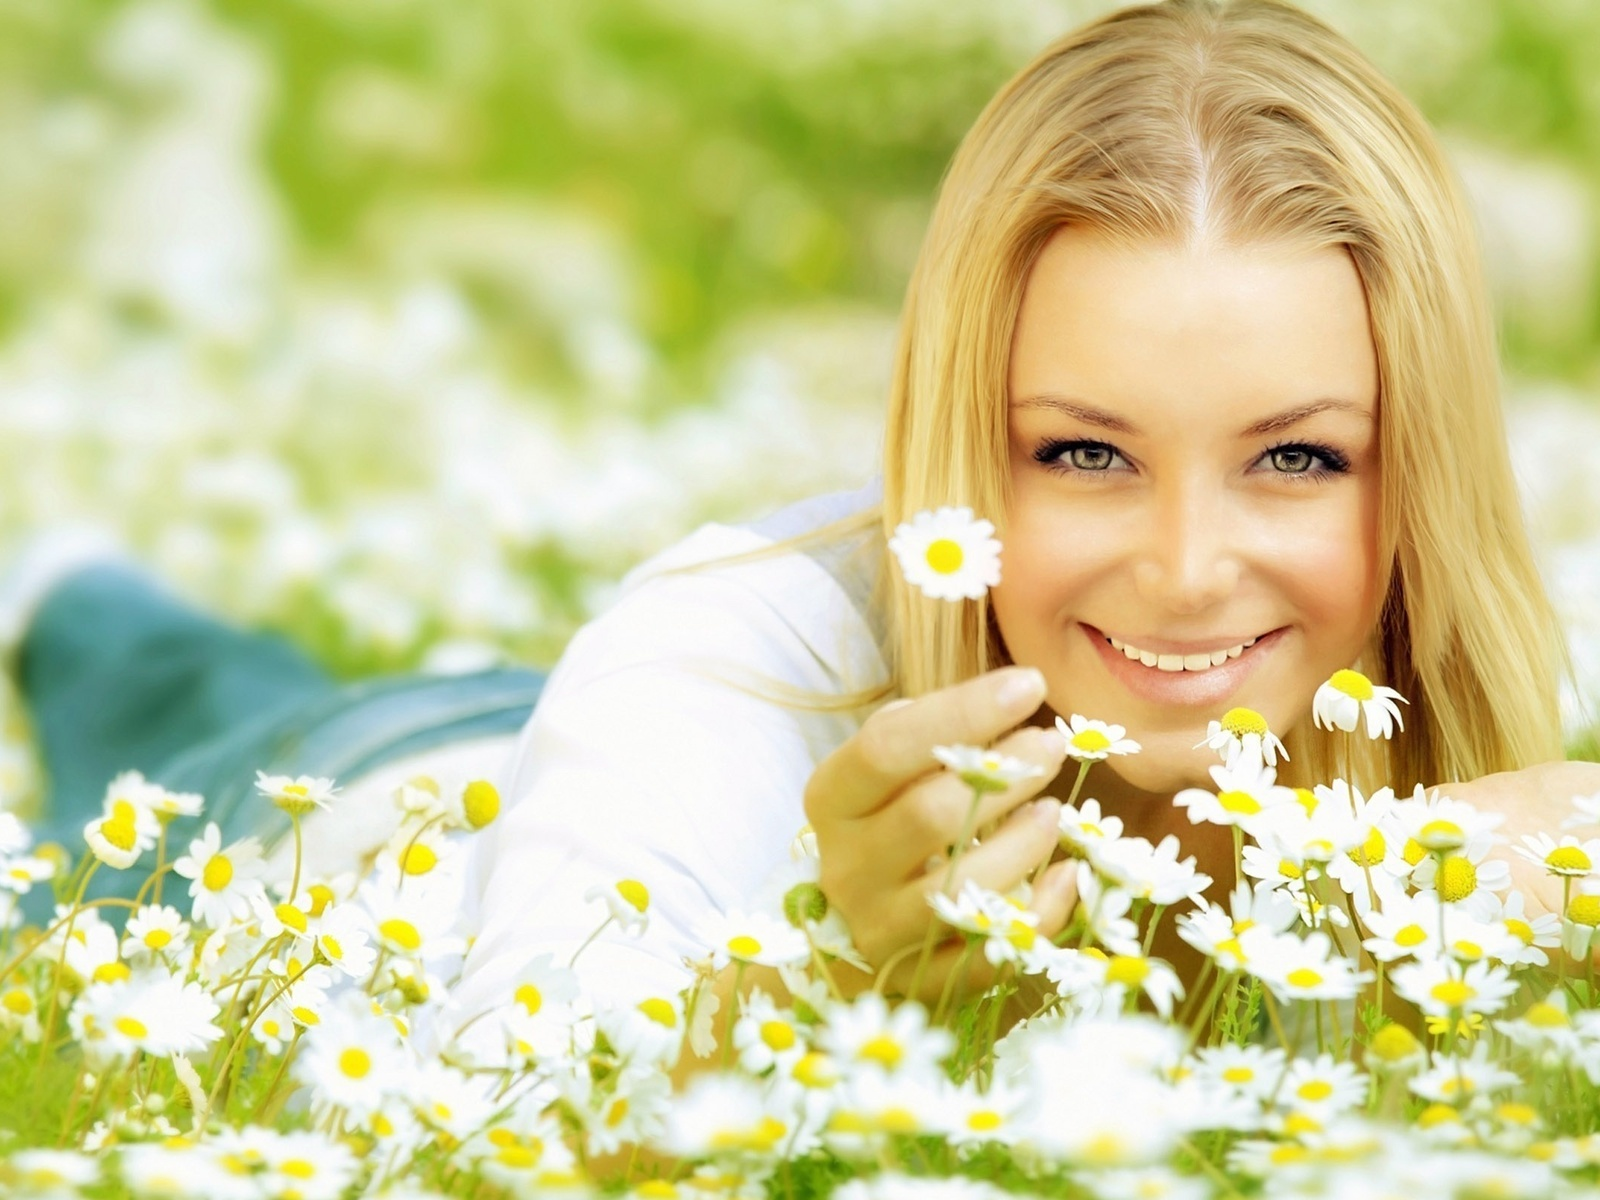 Smiling-Girl-Lying-On-Daisy-Flowers-HD-Wallpaper--NatureWallBase.Blogspot.Com